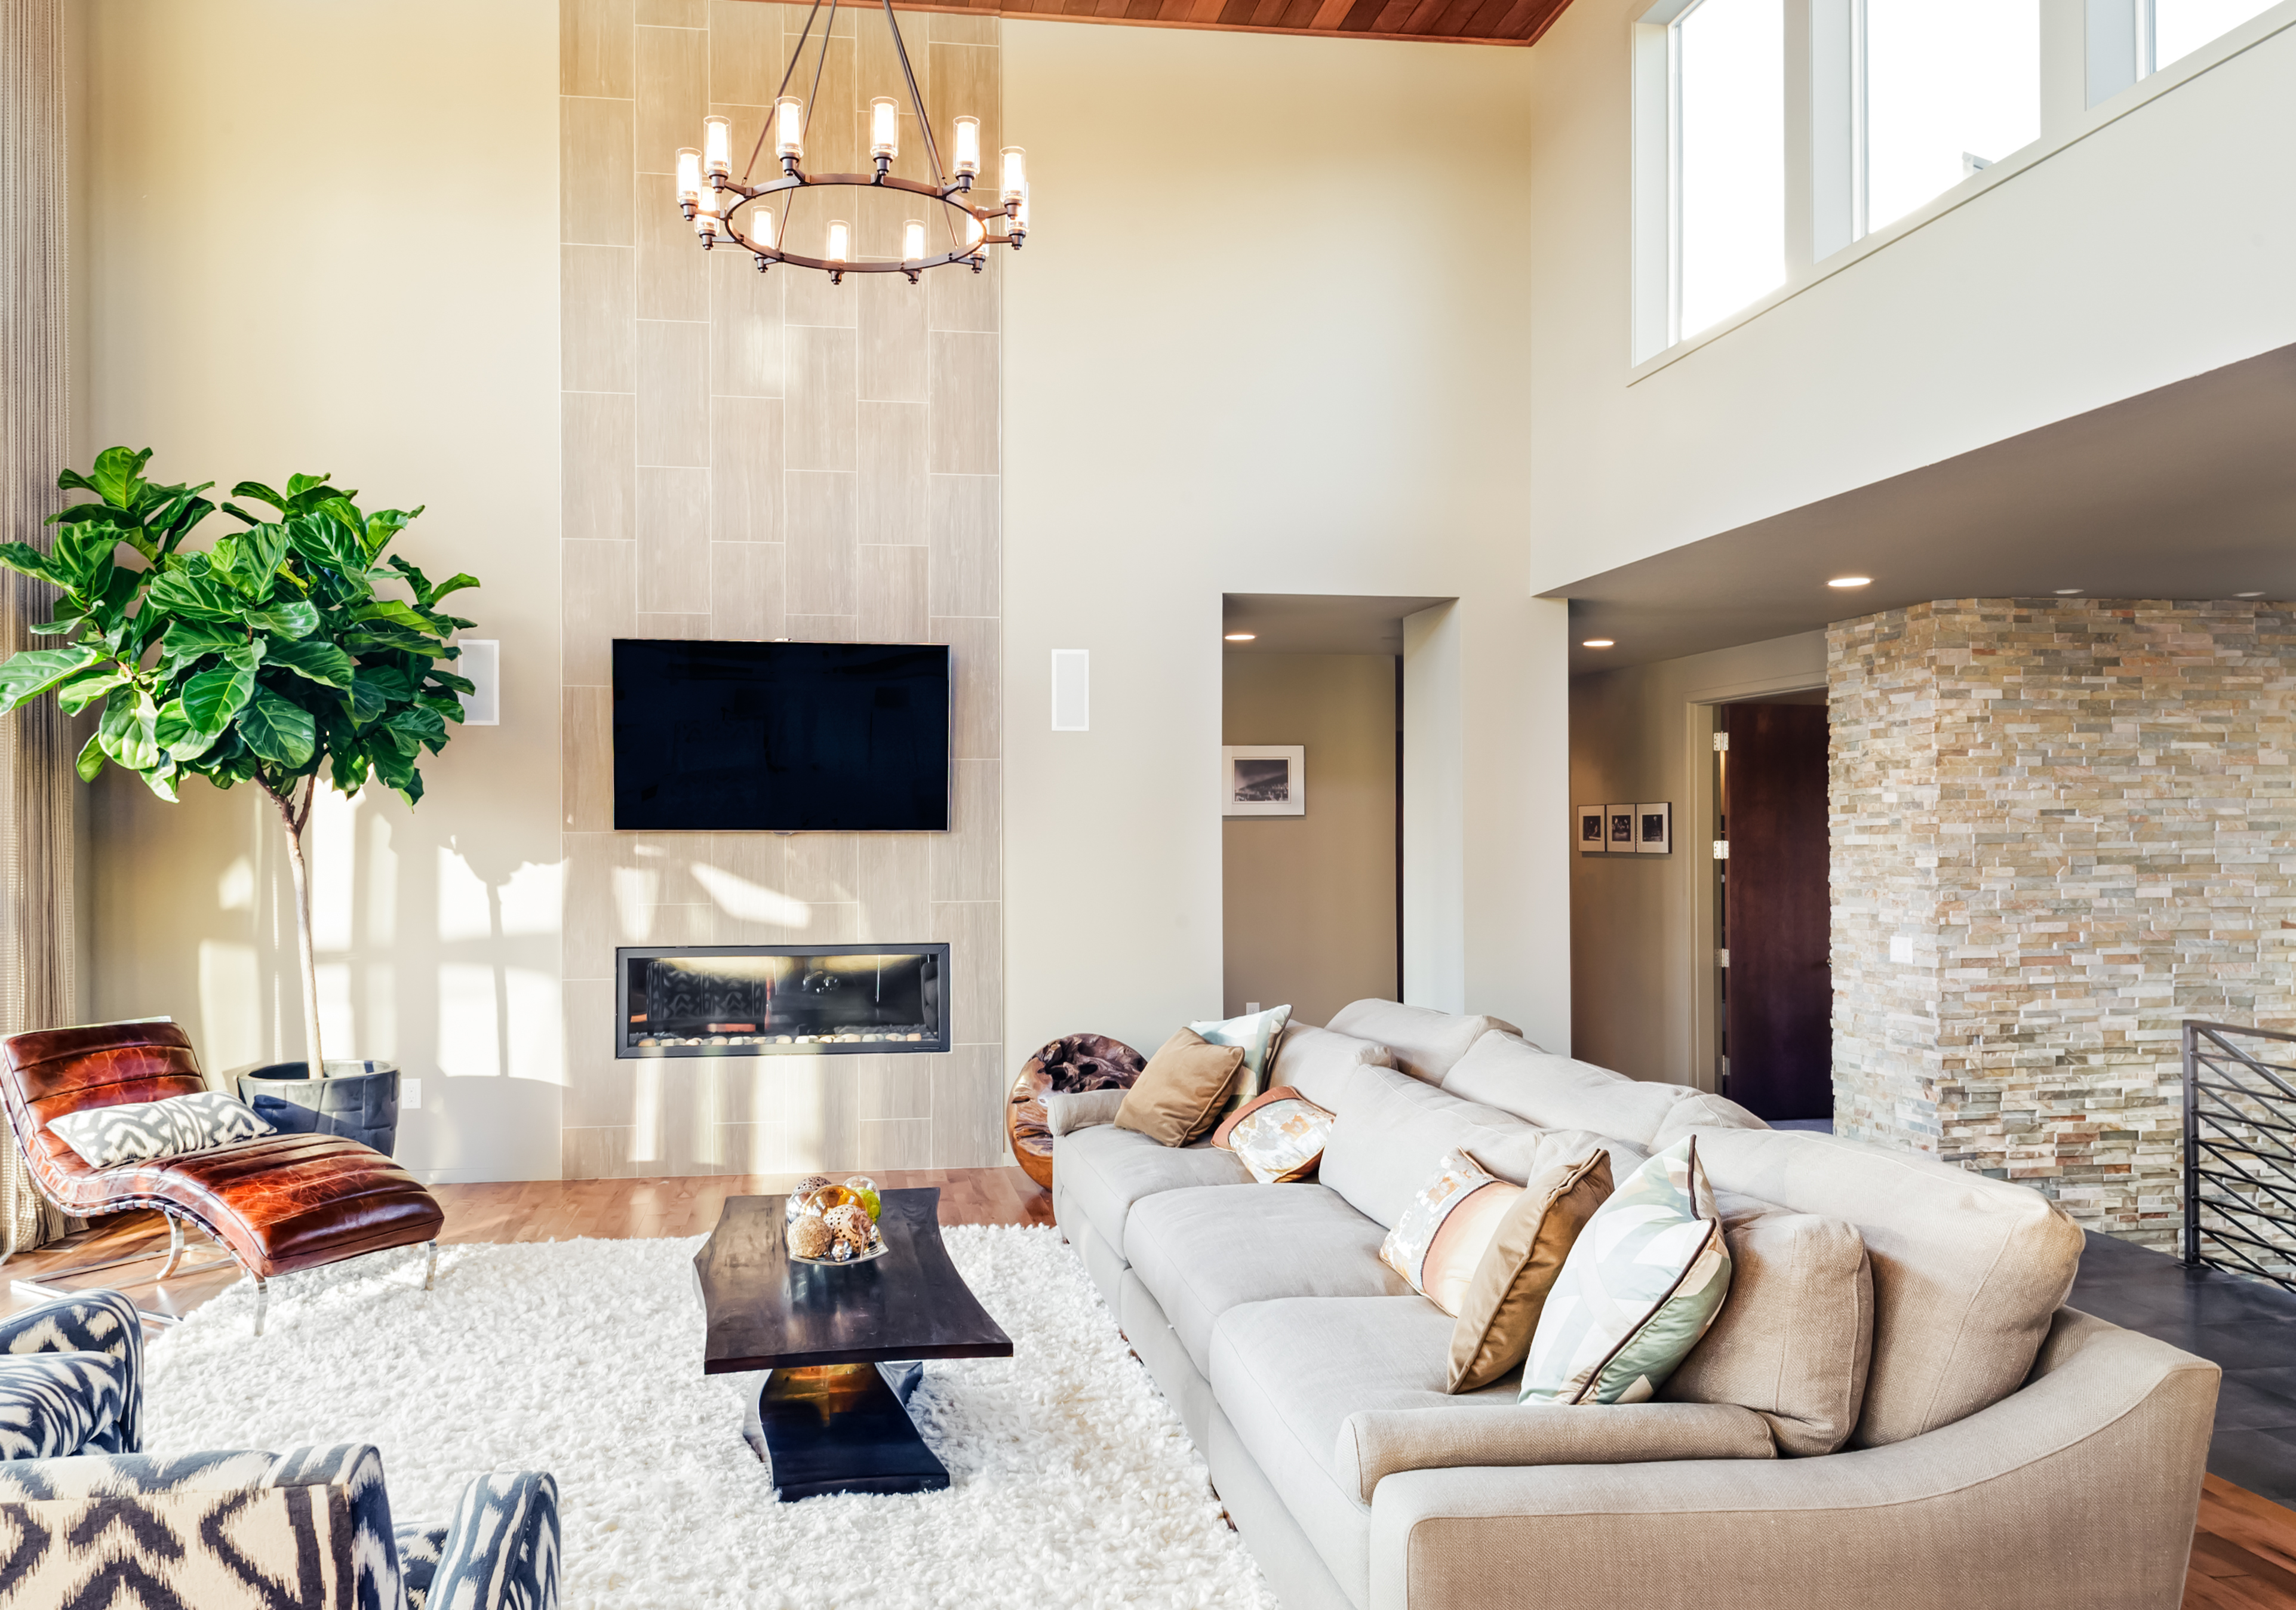 Never Discuss These Things When Showing a Home